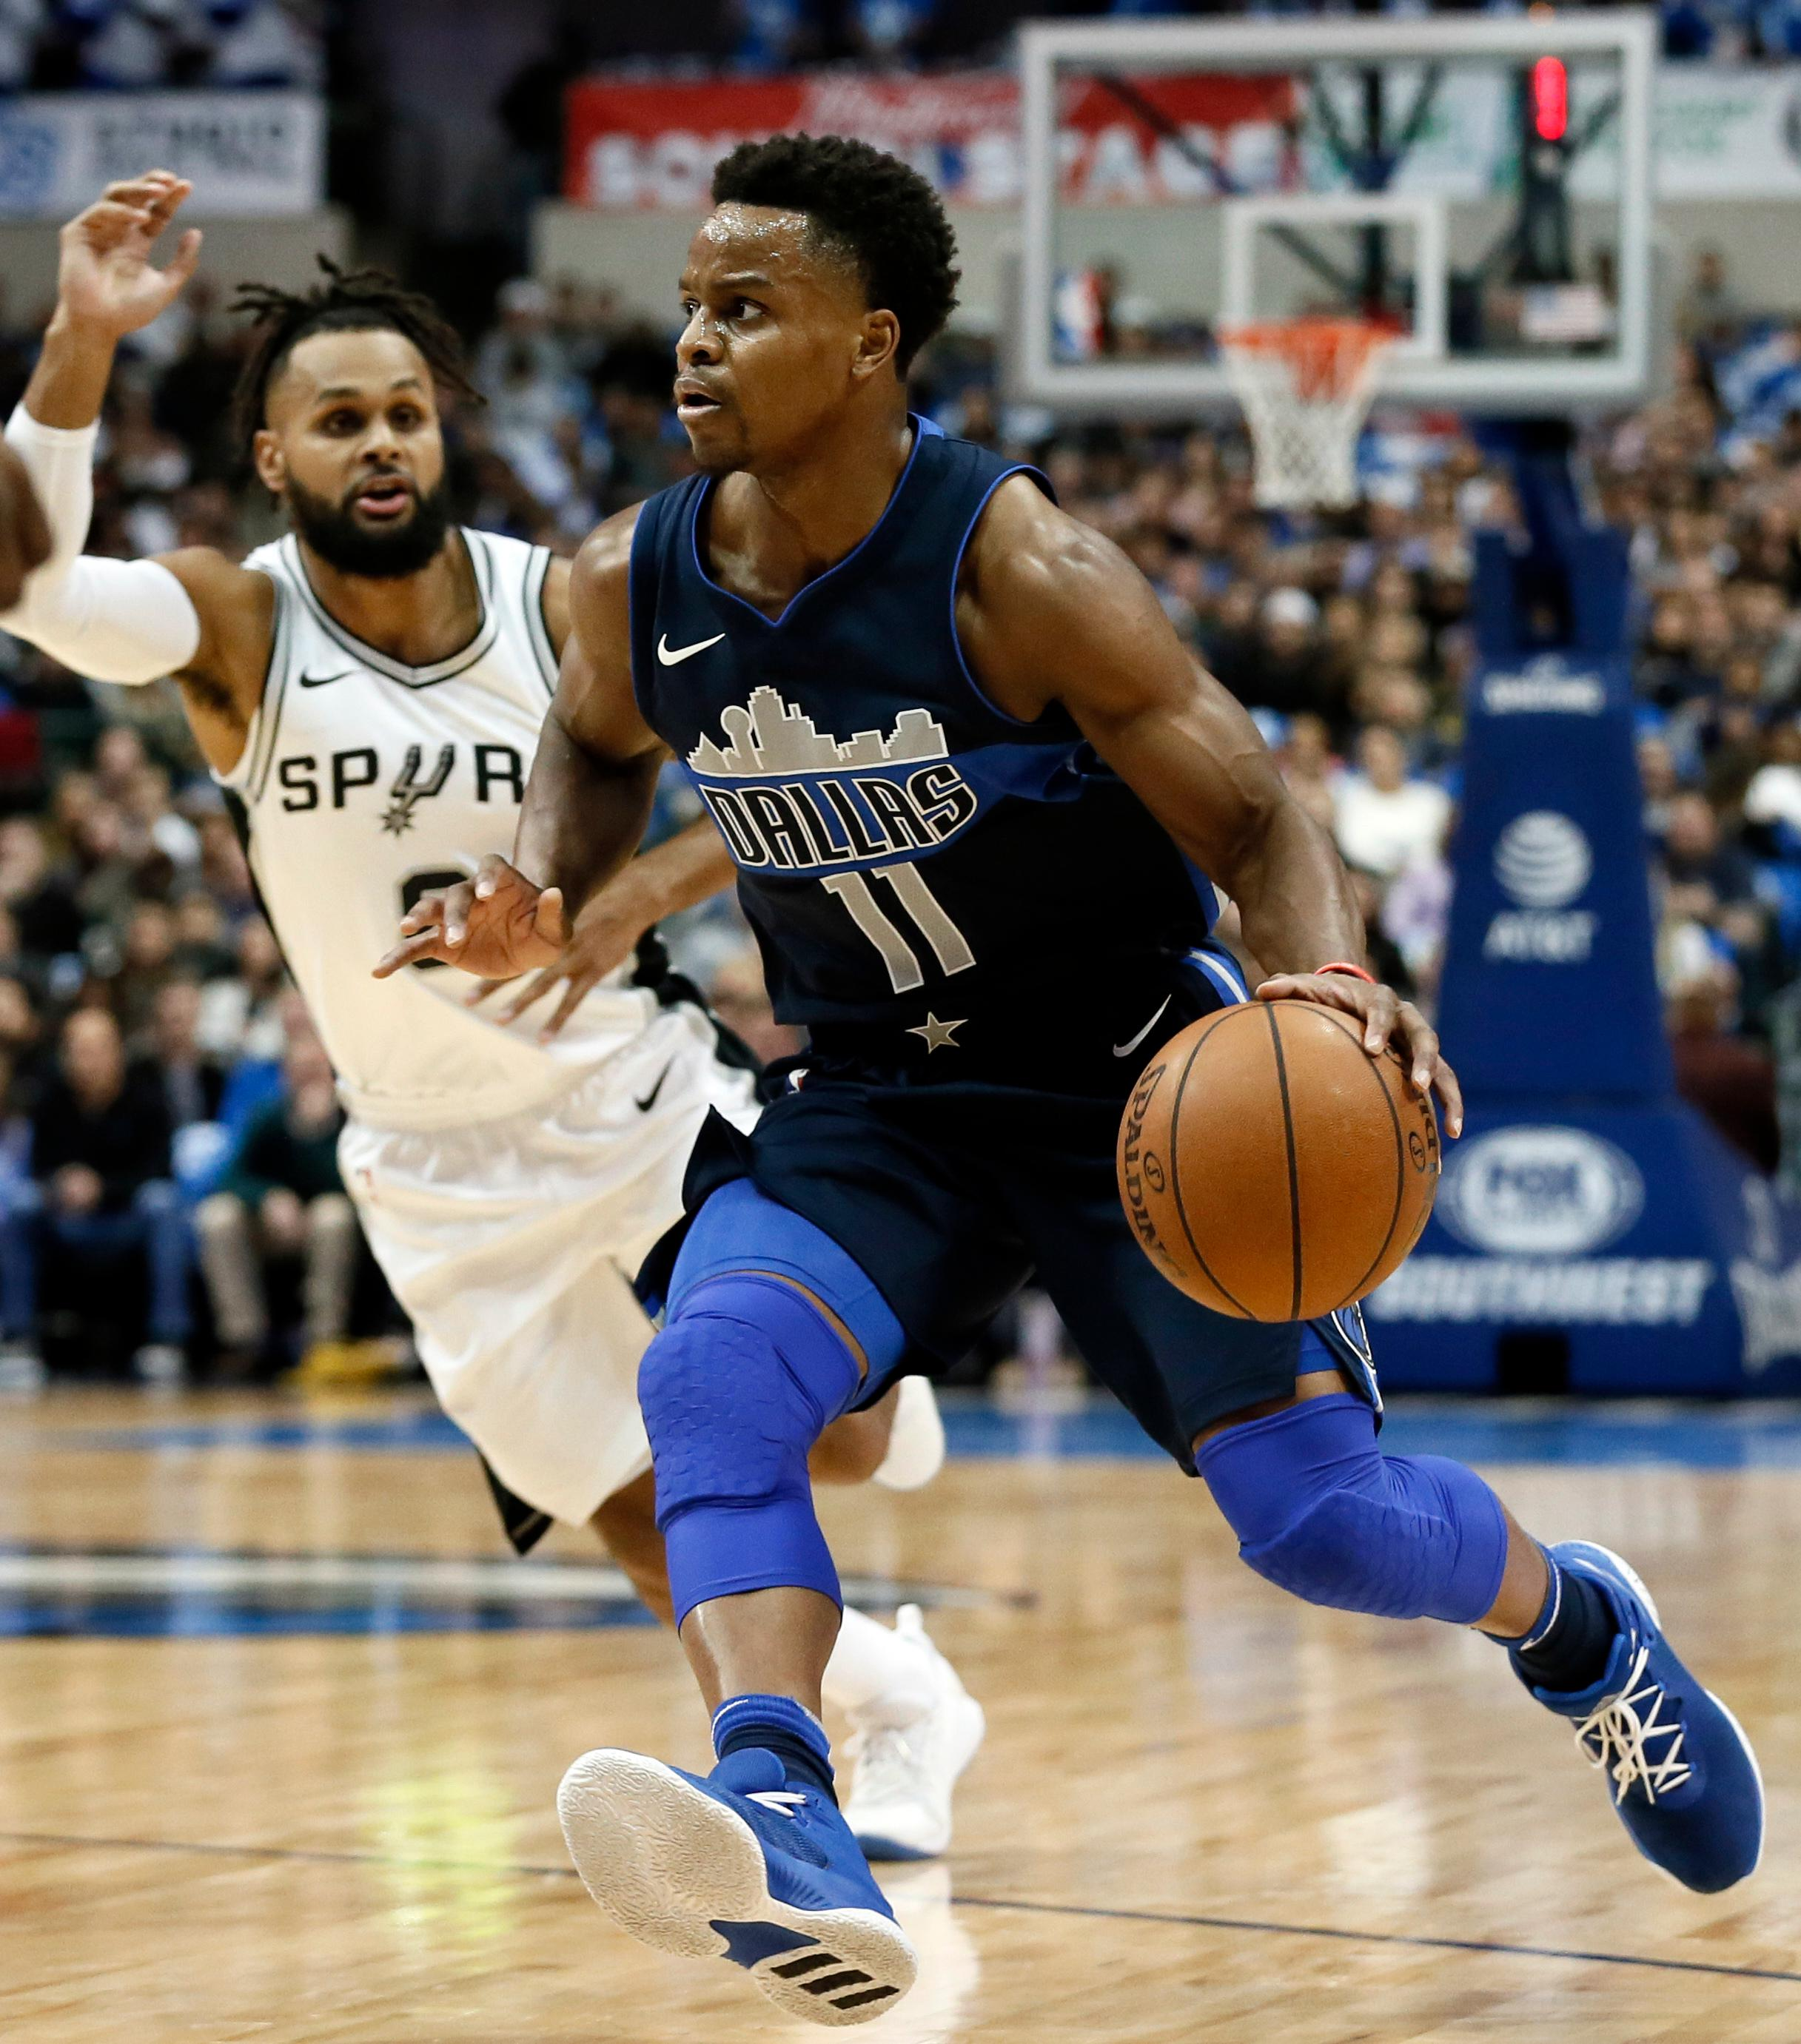 Dallas Mavericks guard Yogi Ferrell (11) gets past San Antonio Spurs' Patty Mills (8) on a drive to the basket in the first half of an NBA basketball game, Tuesday, Dec. 12, 2017, in Dallas. (AP Photo/Tony Gutierrez)